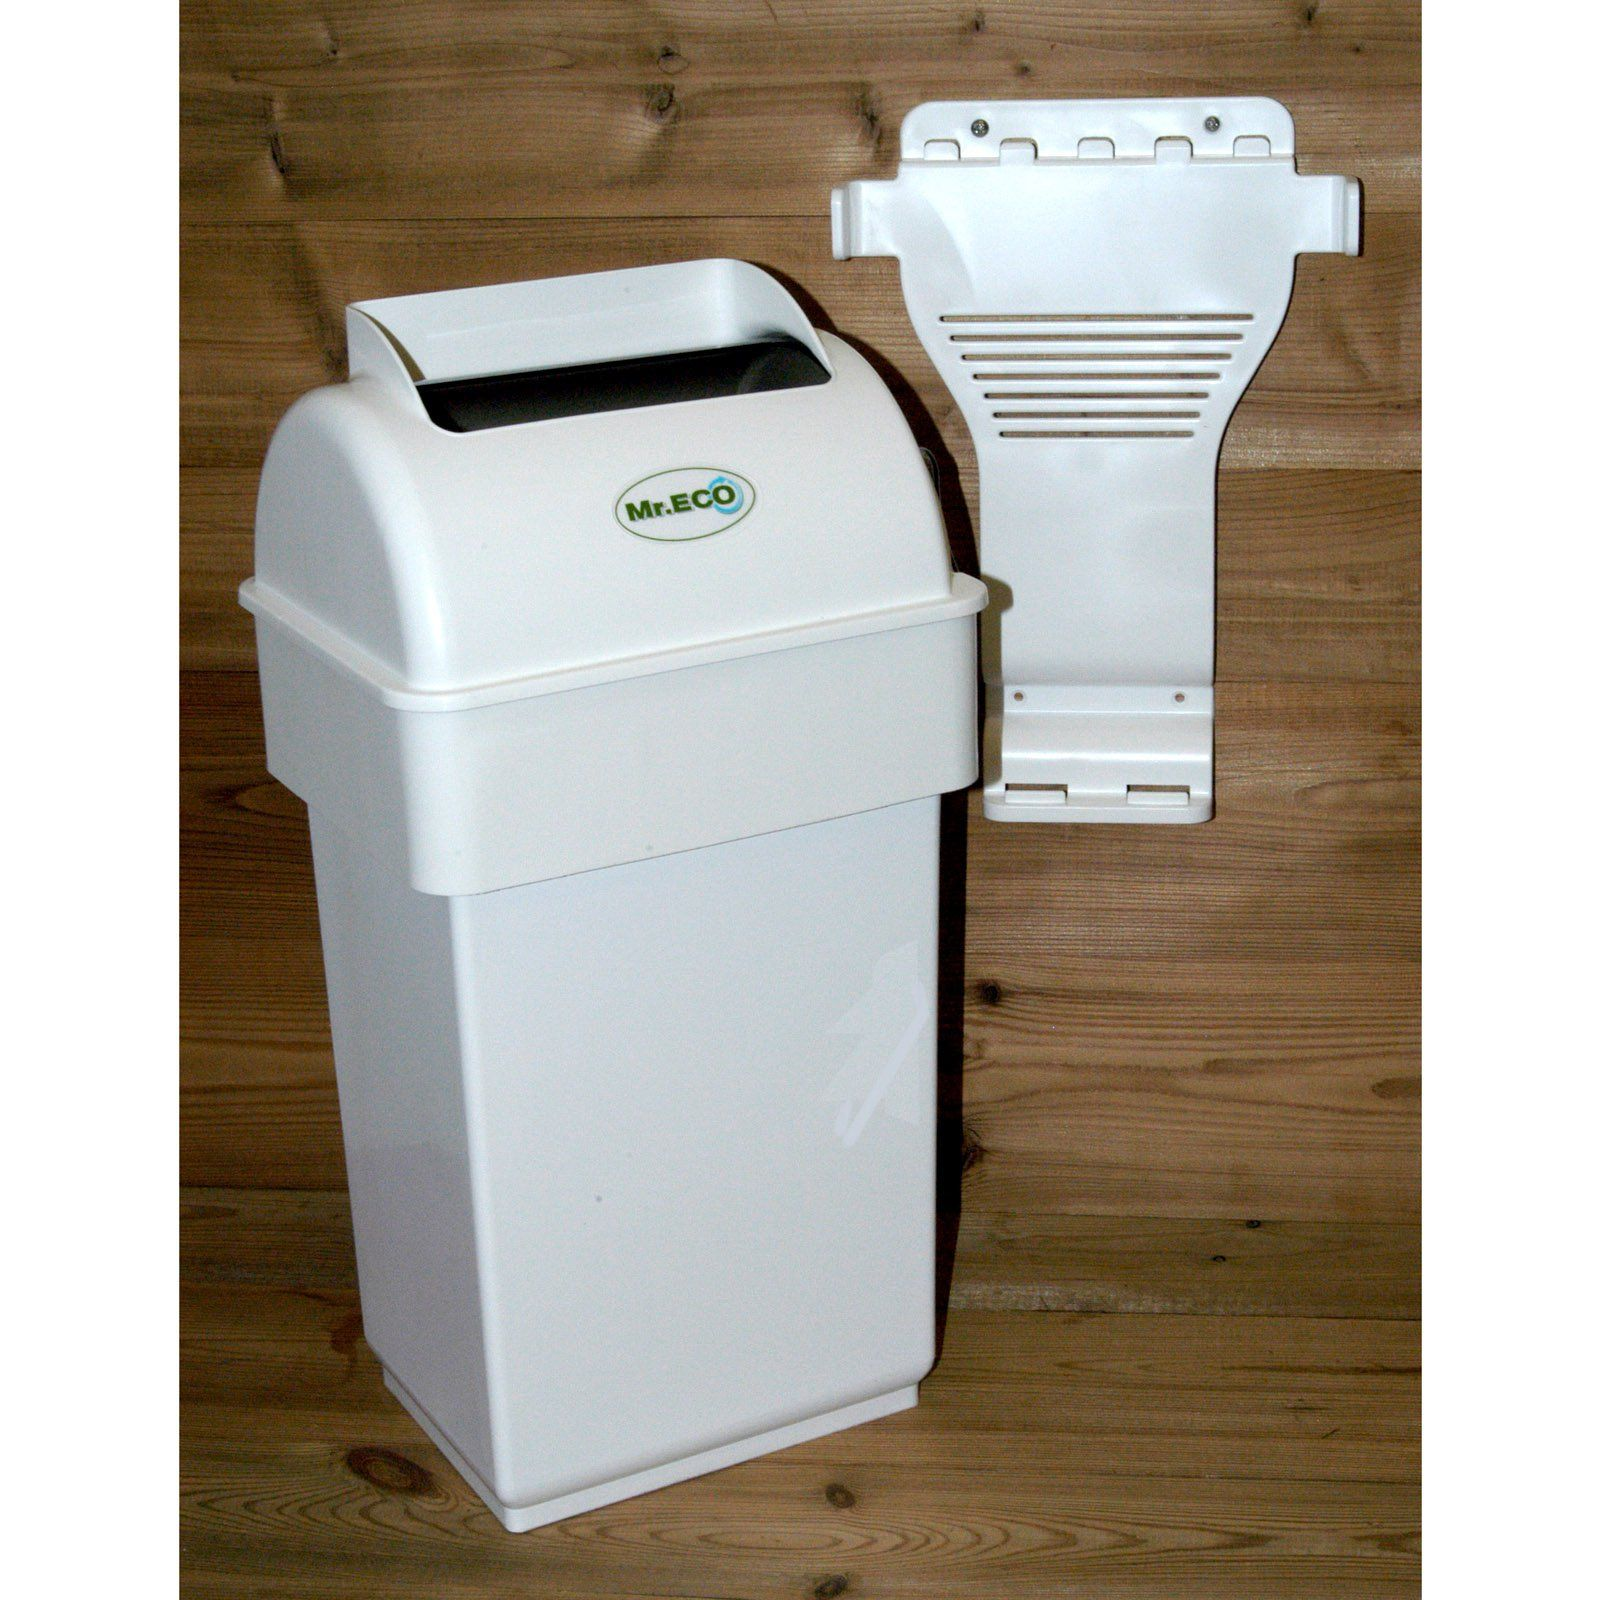 Mr Eco Kitchen Composter Garbage Containers Compost Trash Can